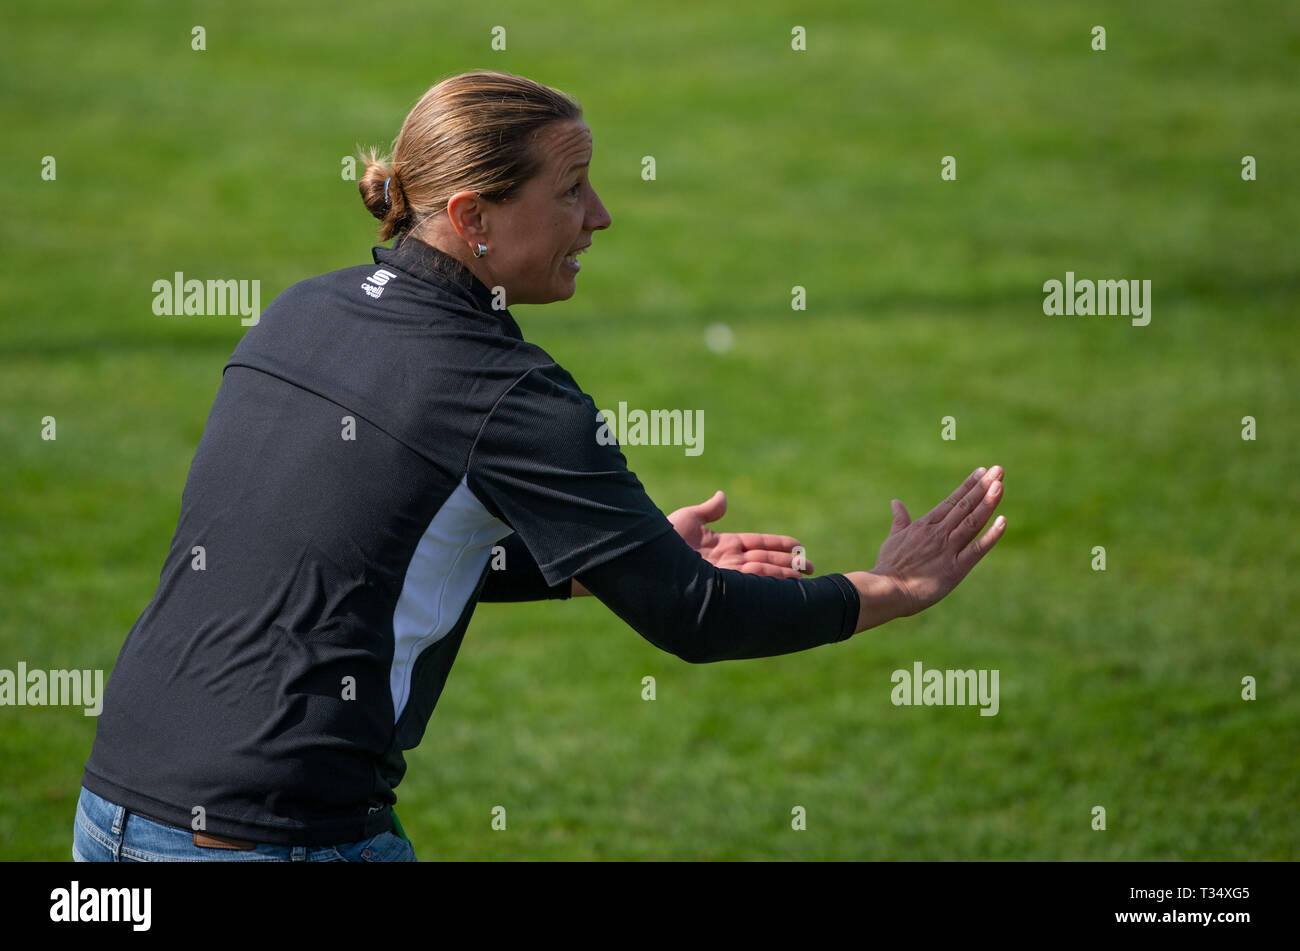 Straelen, Germany. 06th Apr, 2019. Soccer: Regionalliga West, SV Straelen - SC Verl, 28th matchday. Inka Grings, SV Straelen trainer gestures. Grings is the first woman to take on a coaching position in the regional fourth division. Credit: Bernd Thissen/dpa/Alamy Live News - Stock Image